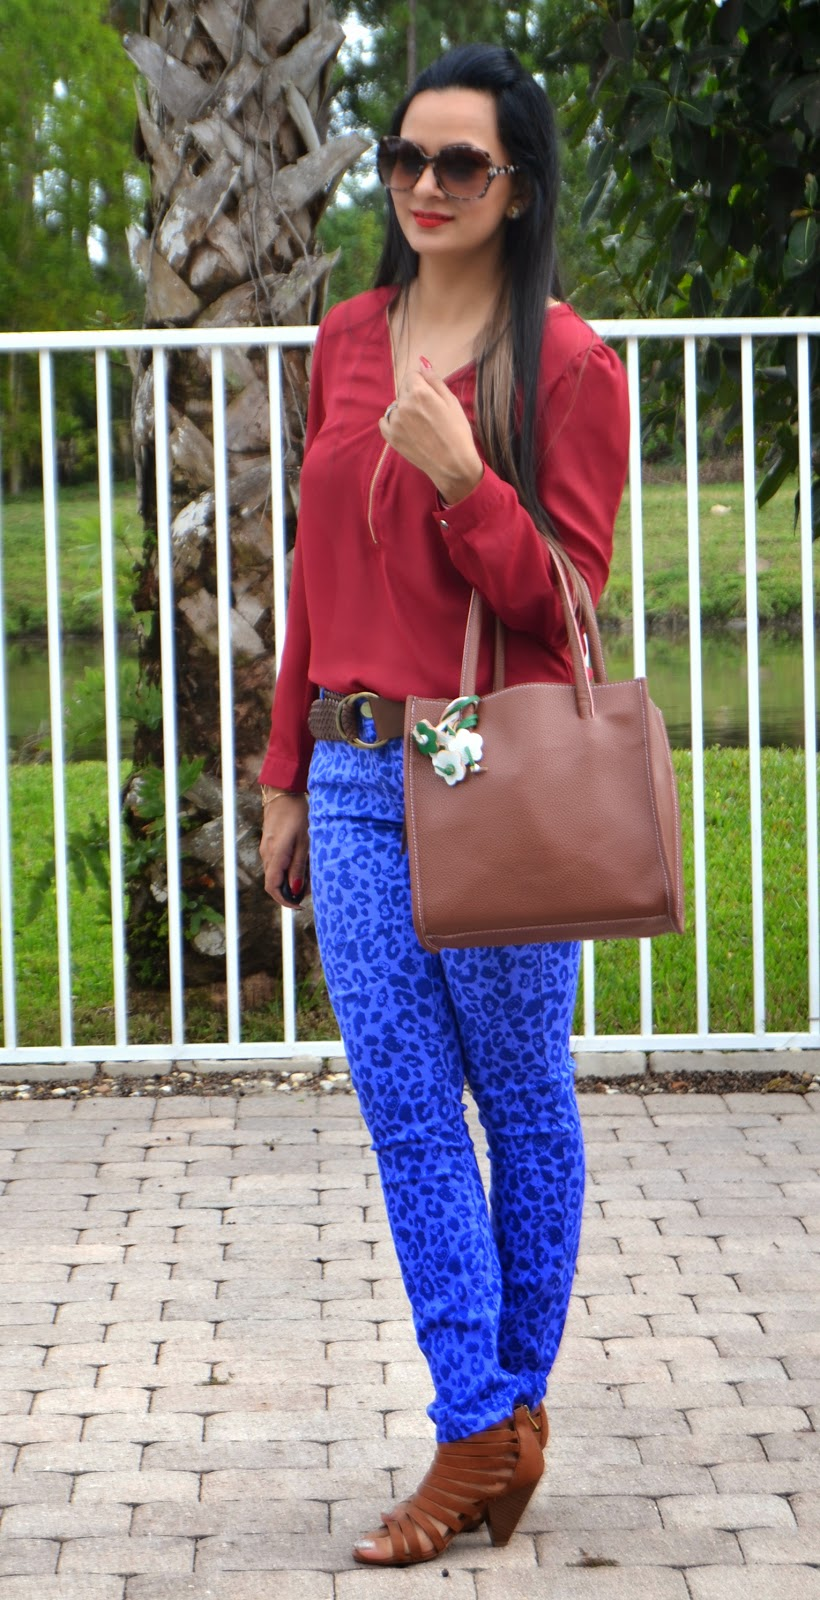 oasap romwe handbag designer shoes gladiator sandals leopard print hello kitty skinny jeans www.sandysandhu.co